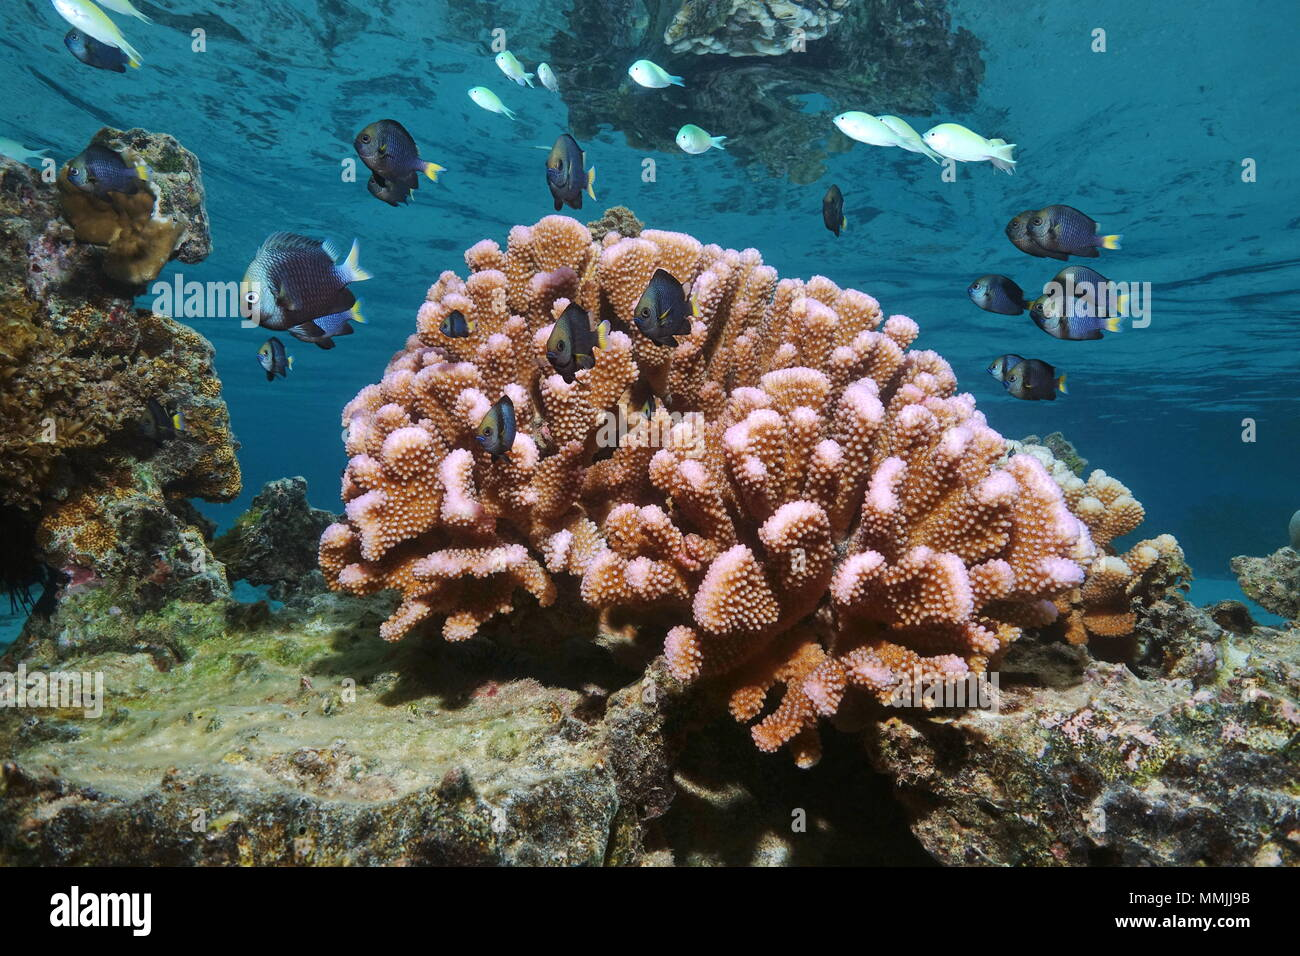 Pink cauliflower coral with tropical fish (damselfish) in shallow water, Pacific ocean, Polynesia, American Samoa - Stock Image